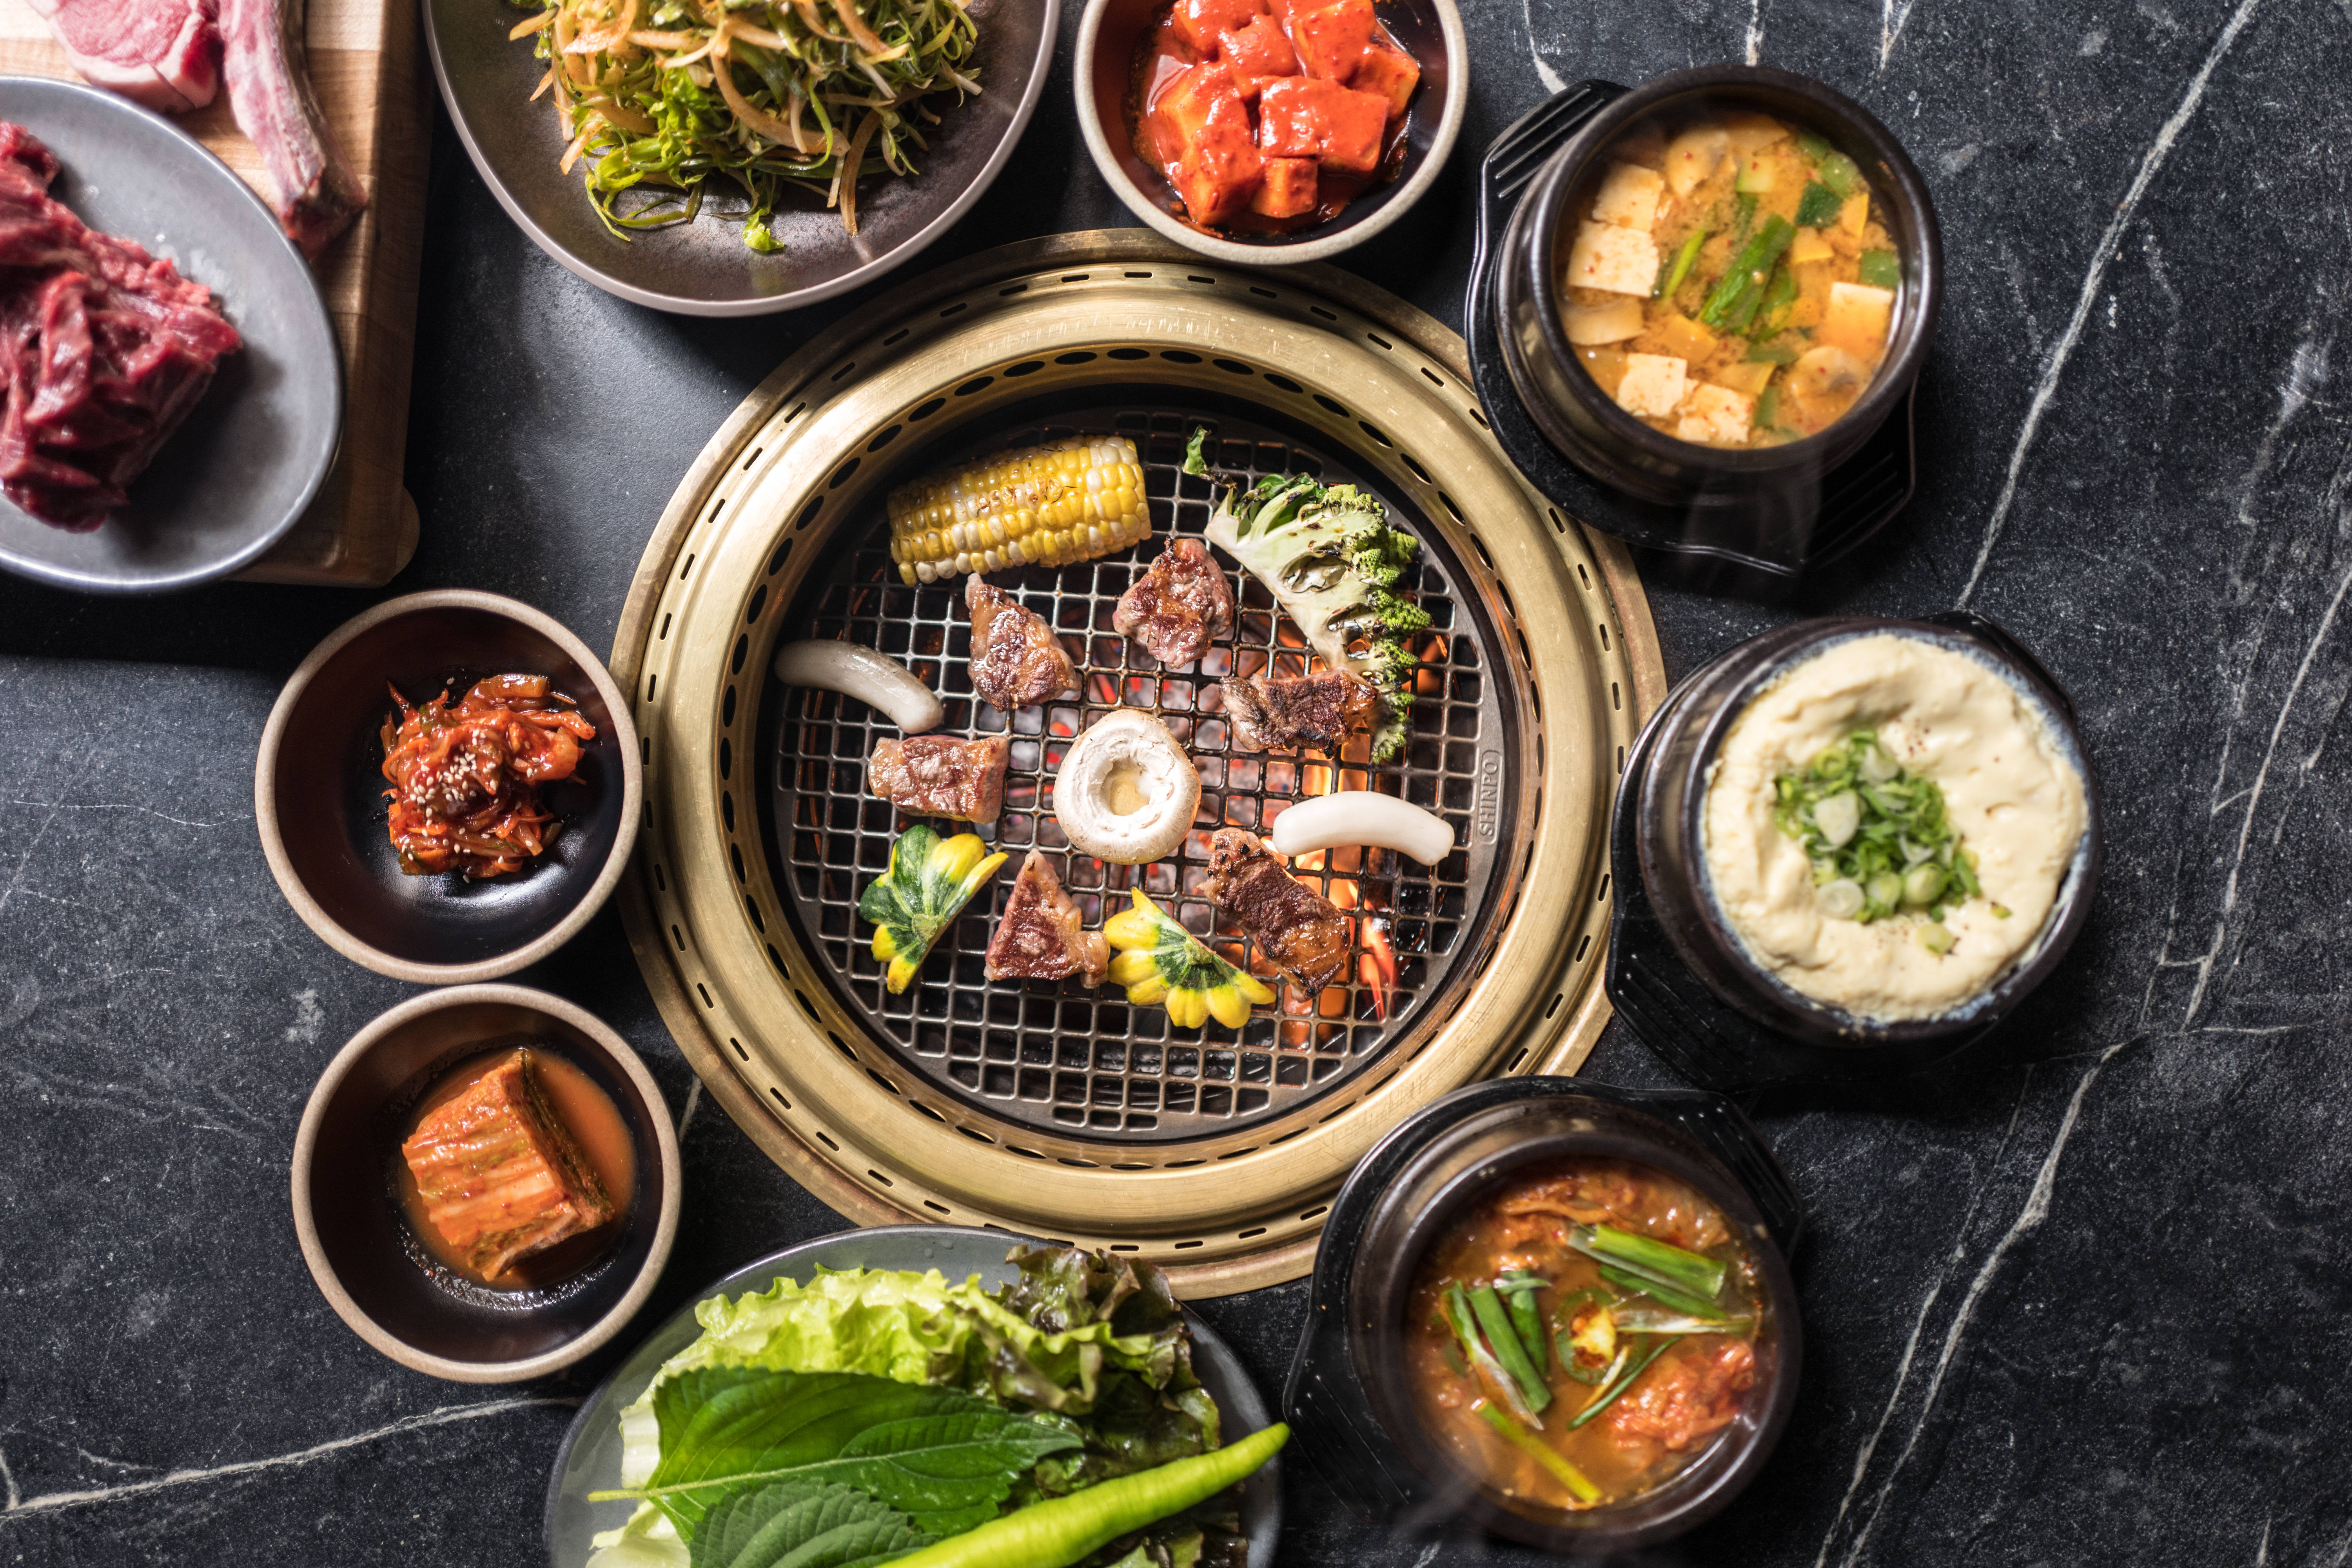 A circular beef-filled tabletop grill sits at the center; around that gold-rimmed grill are small banchan, including kimchi and egg omelet